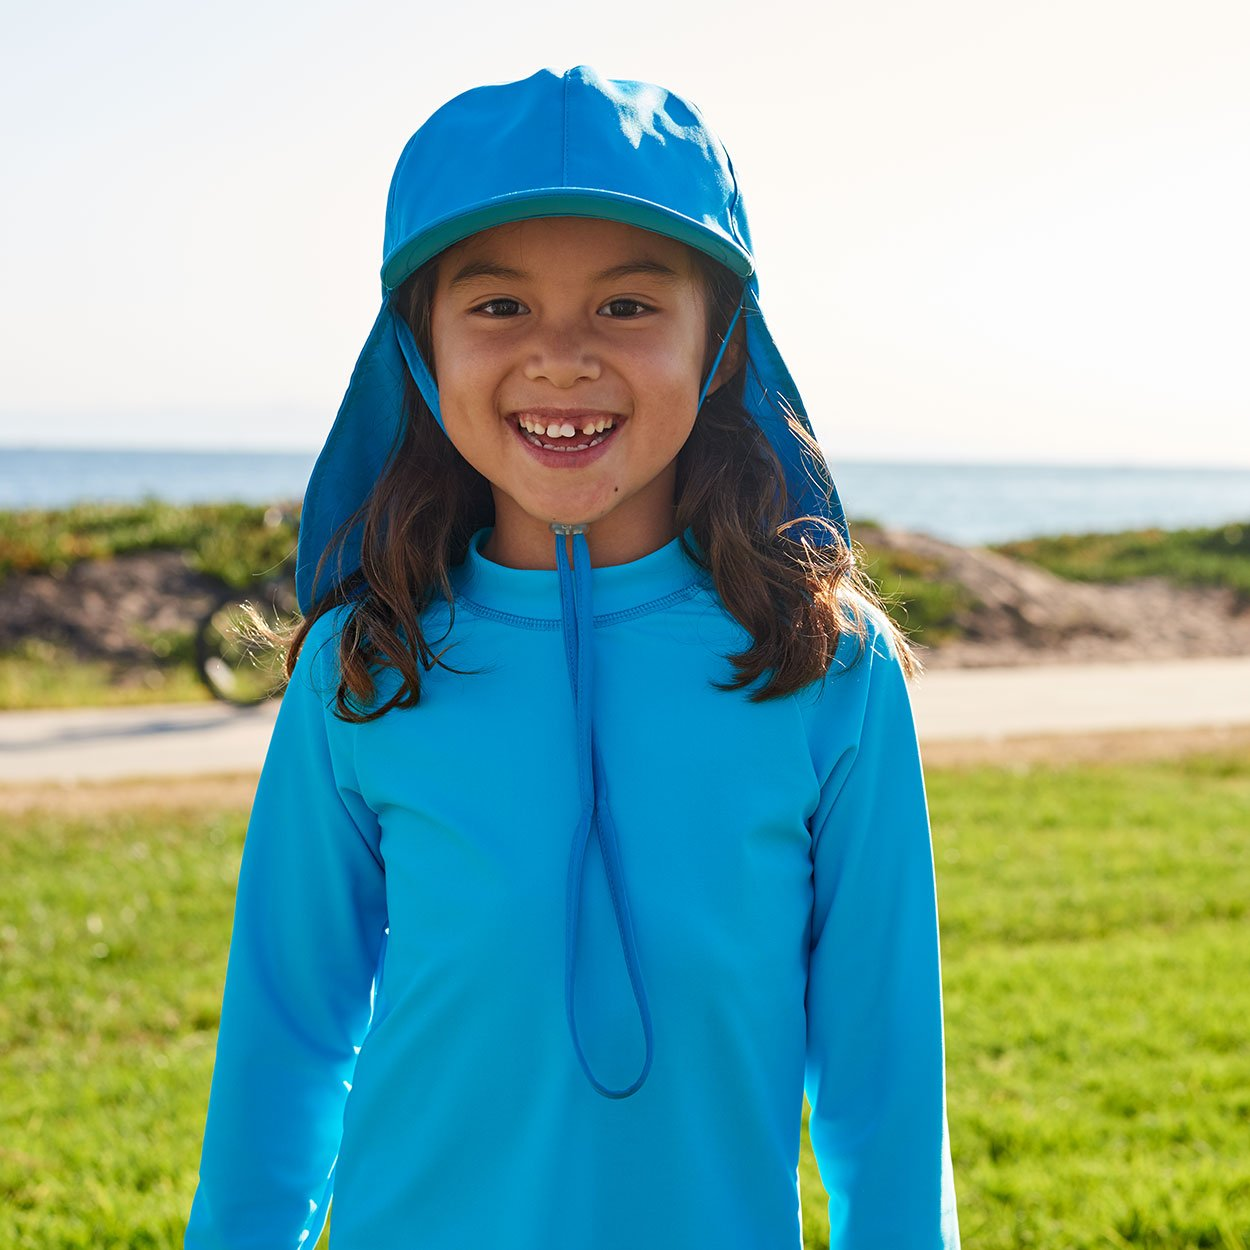 Kids Blue Legionnaire Sun Hat Upf 50 Size S Xl Girl Smiling Wearing Blue Hat on a Grassy Patch Sunpoplife